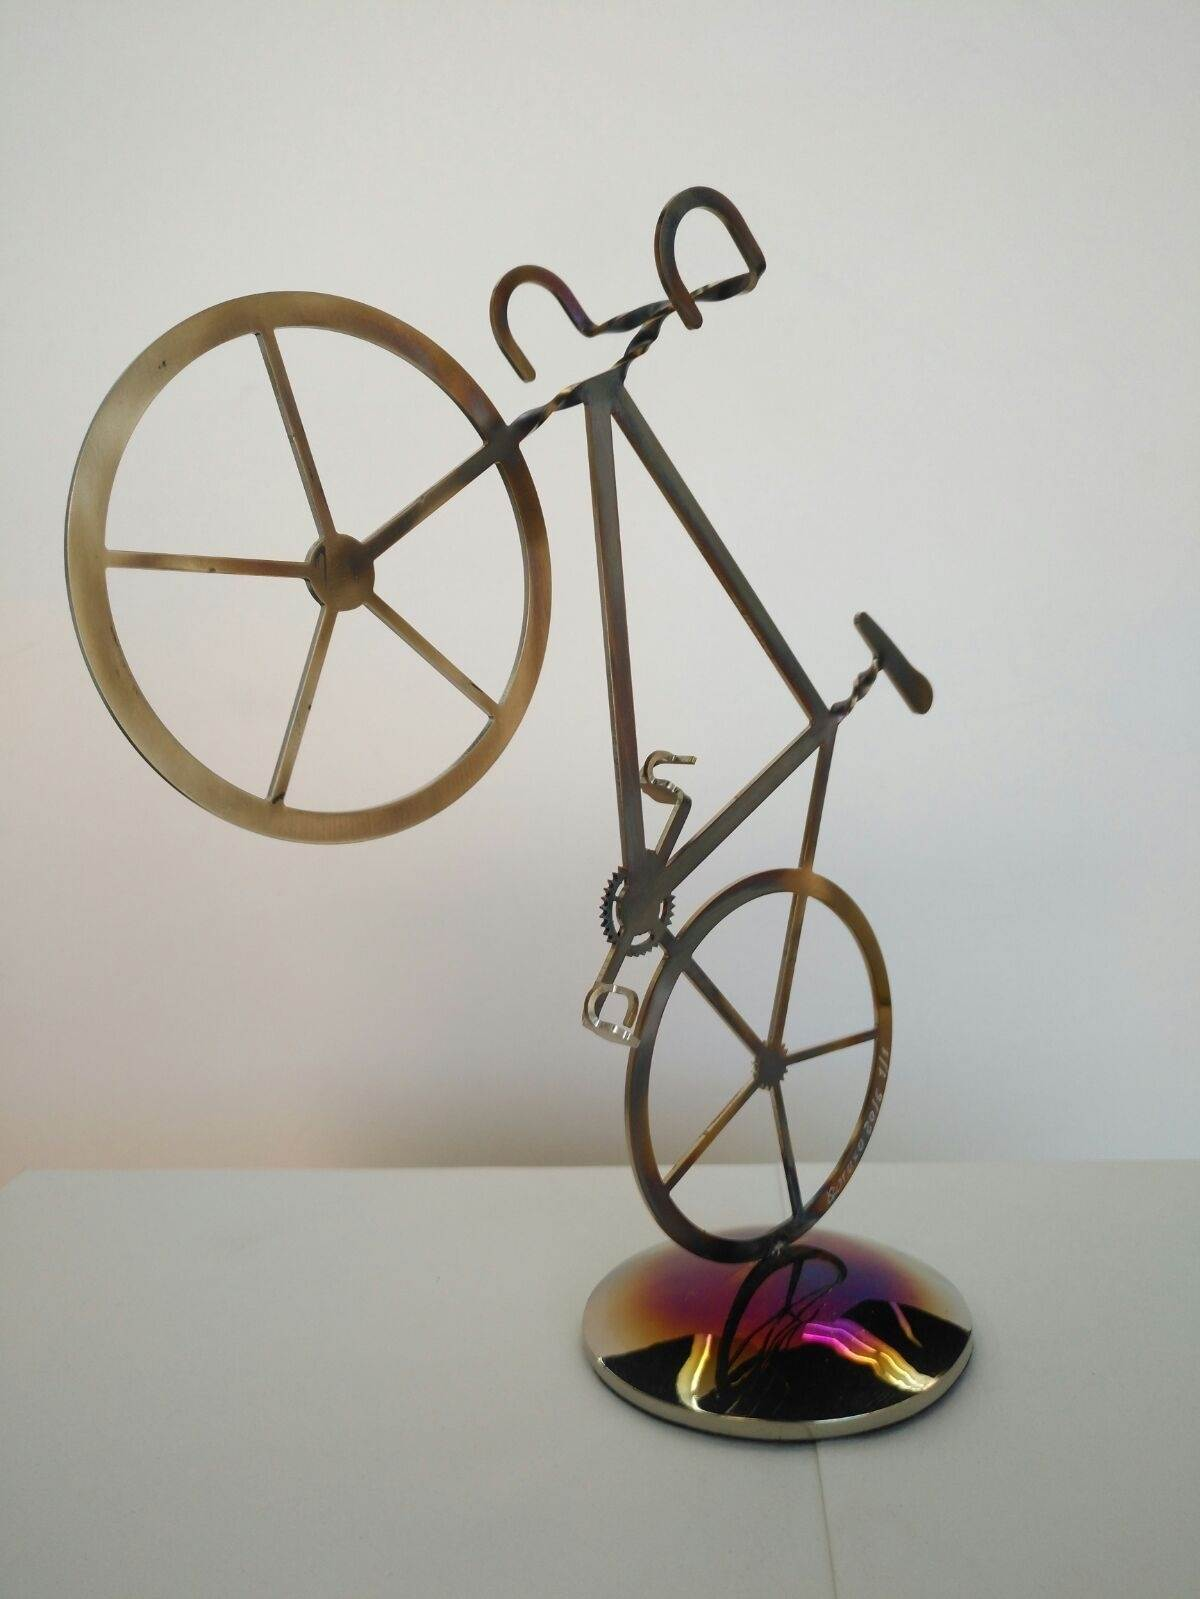 Bicicleta 250 de carrera 1/1, original Small Metal Sculpture by Juan Coruxo